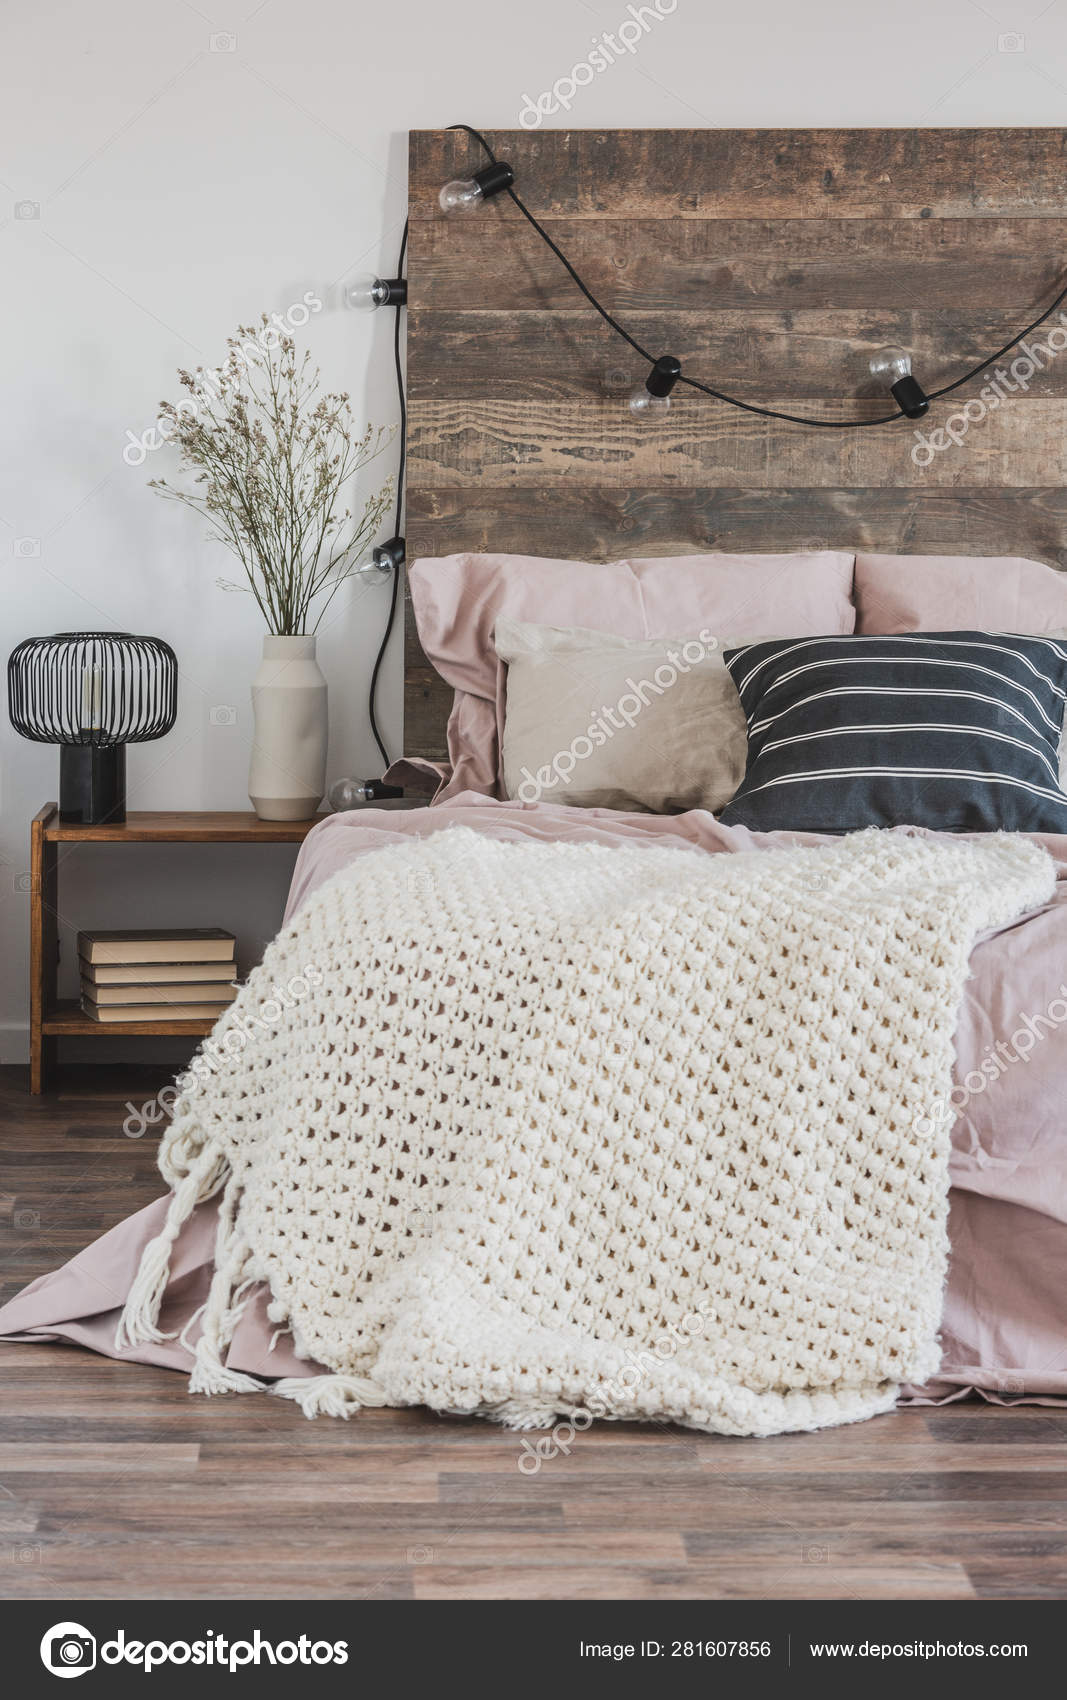 Picture of: Beautiful Bedroom Interior With King Size Bed Wooden Headboard Stock Photo C Photographee Eu 281607856